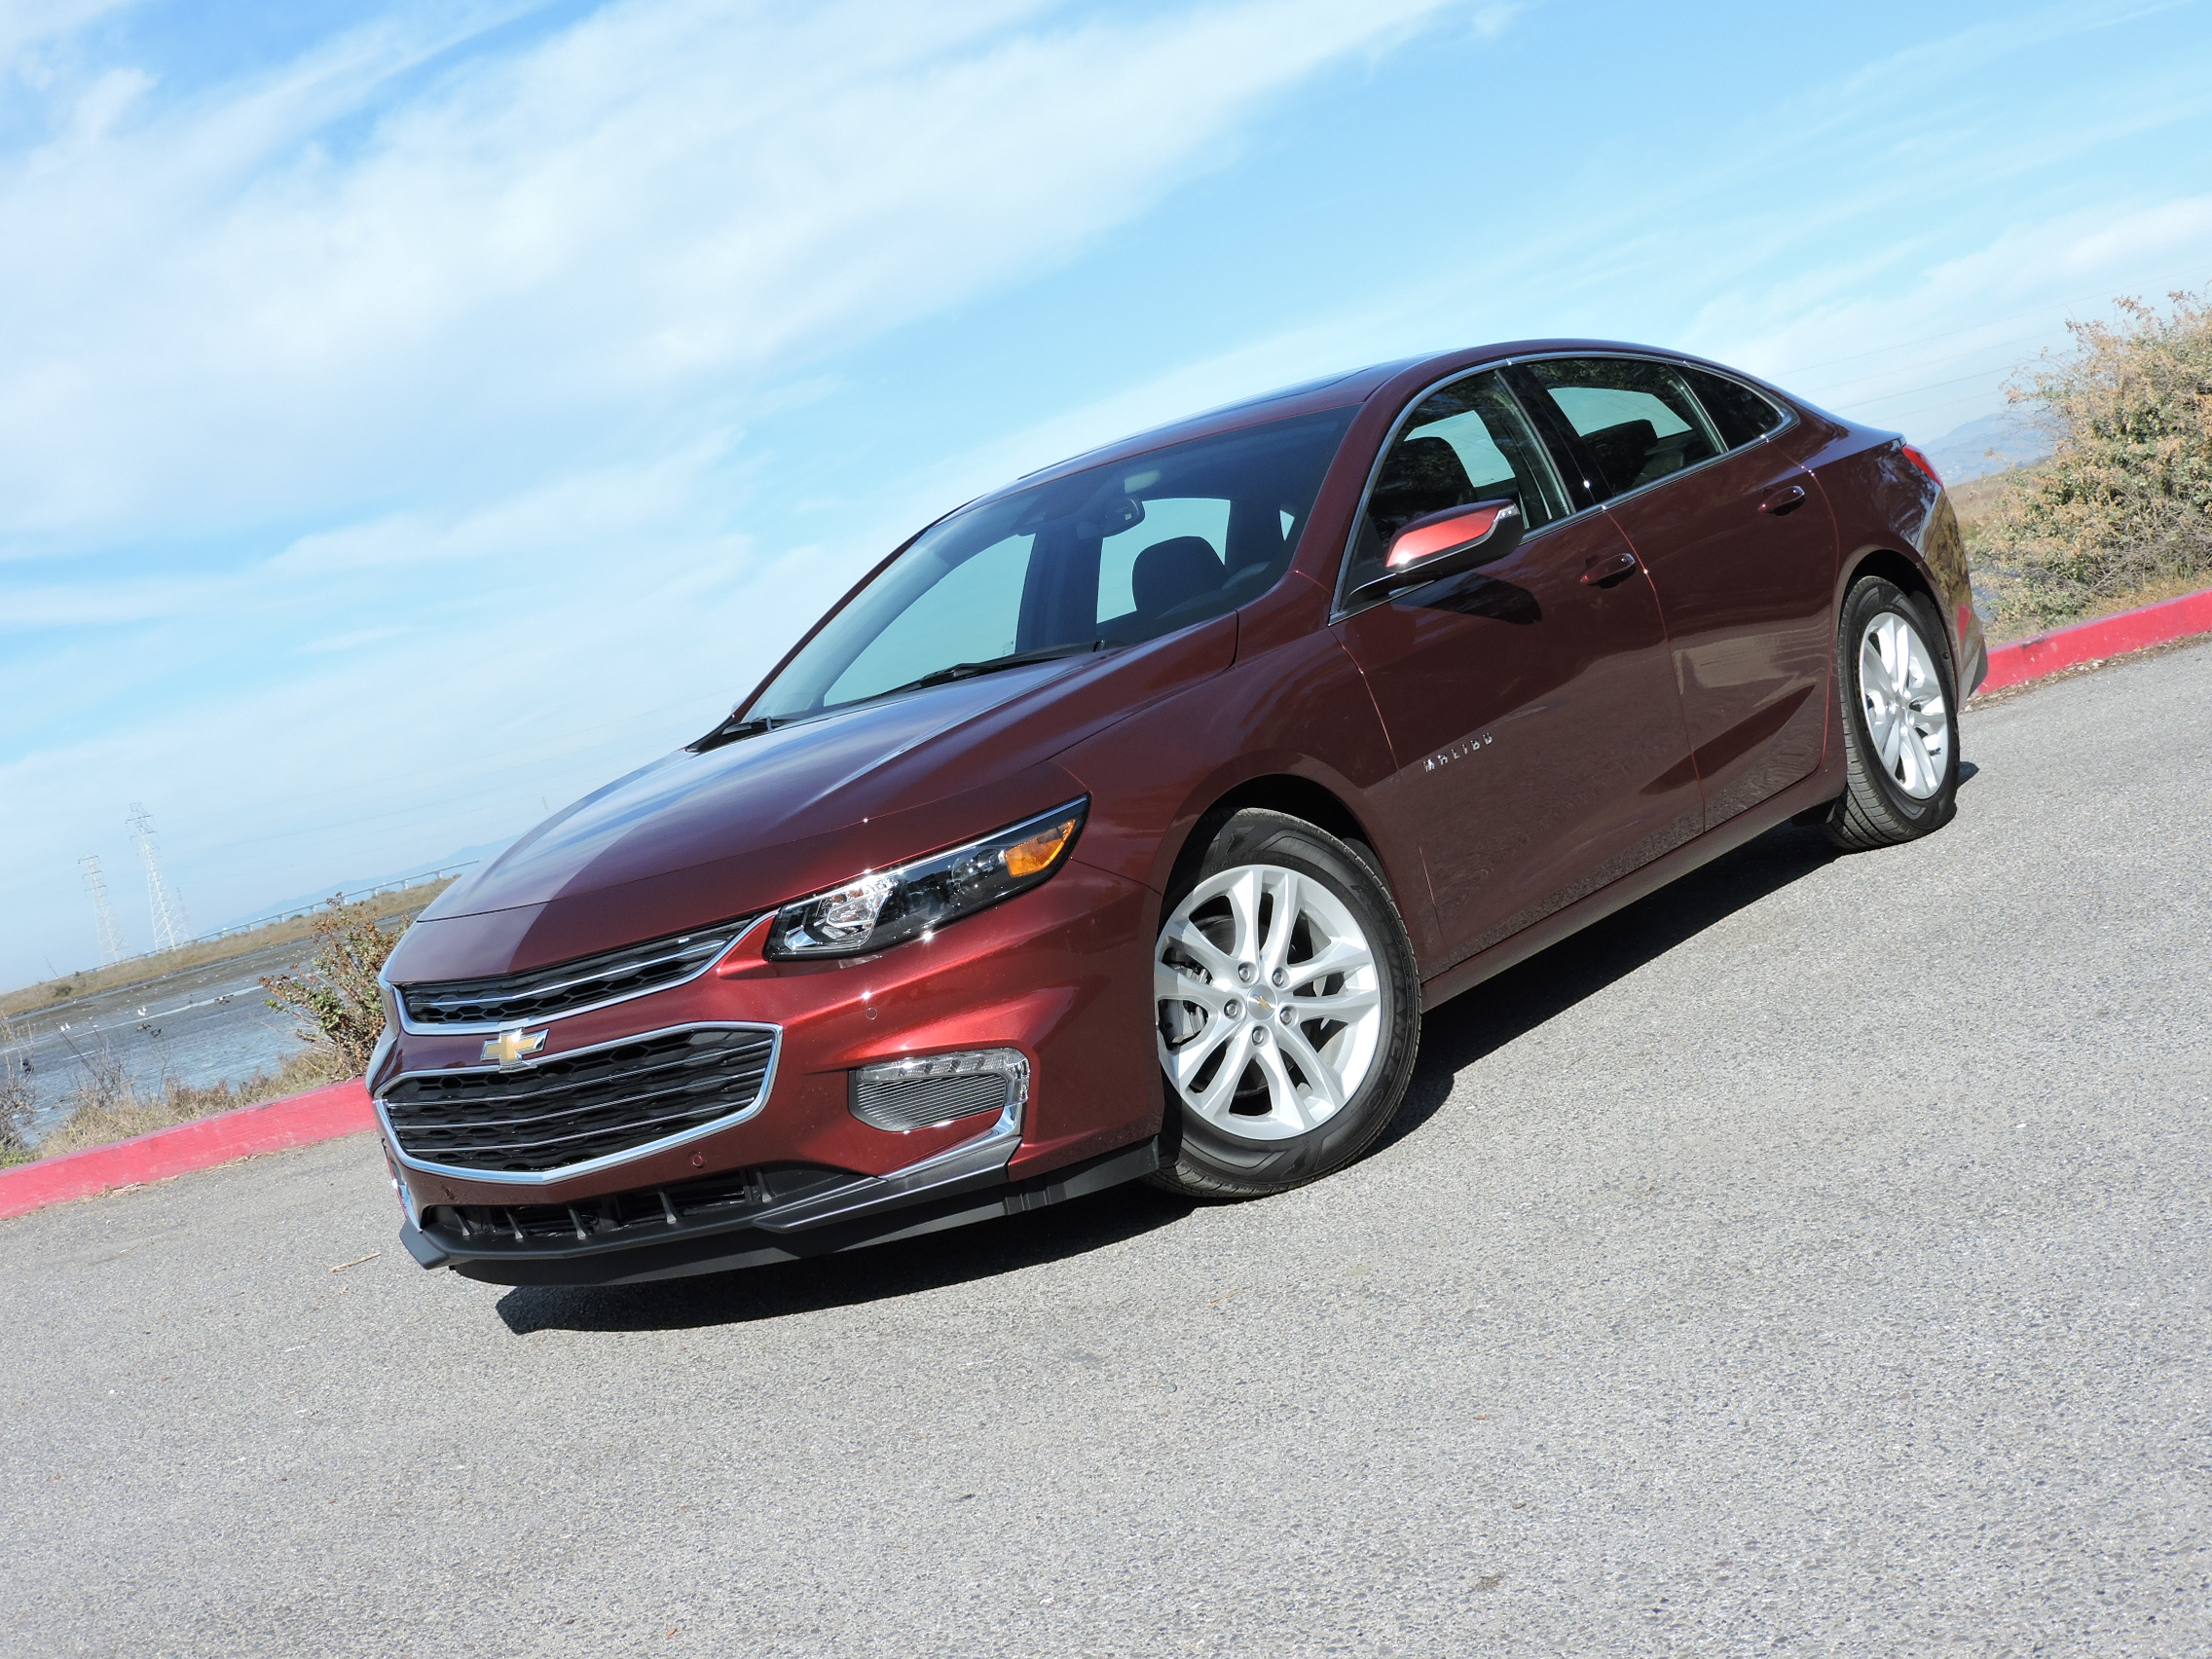 2016 chevrolet malibu hybrid earns 46 mpg combined news. Black Bedroom Furniture Sets. Home Design Ideas